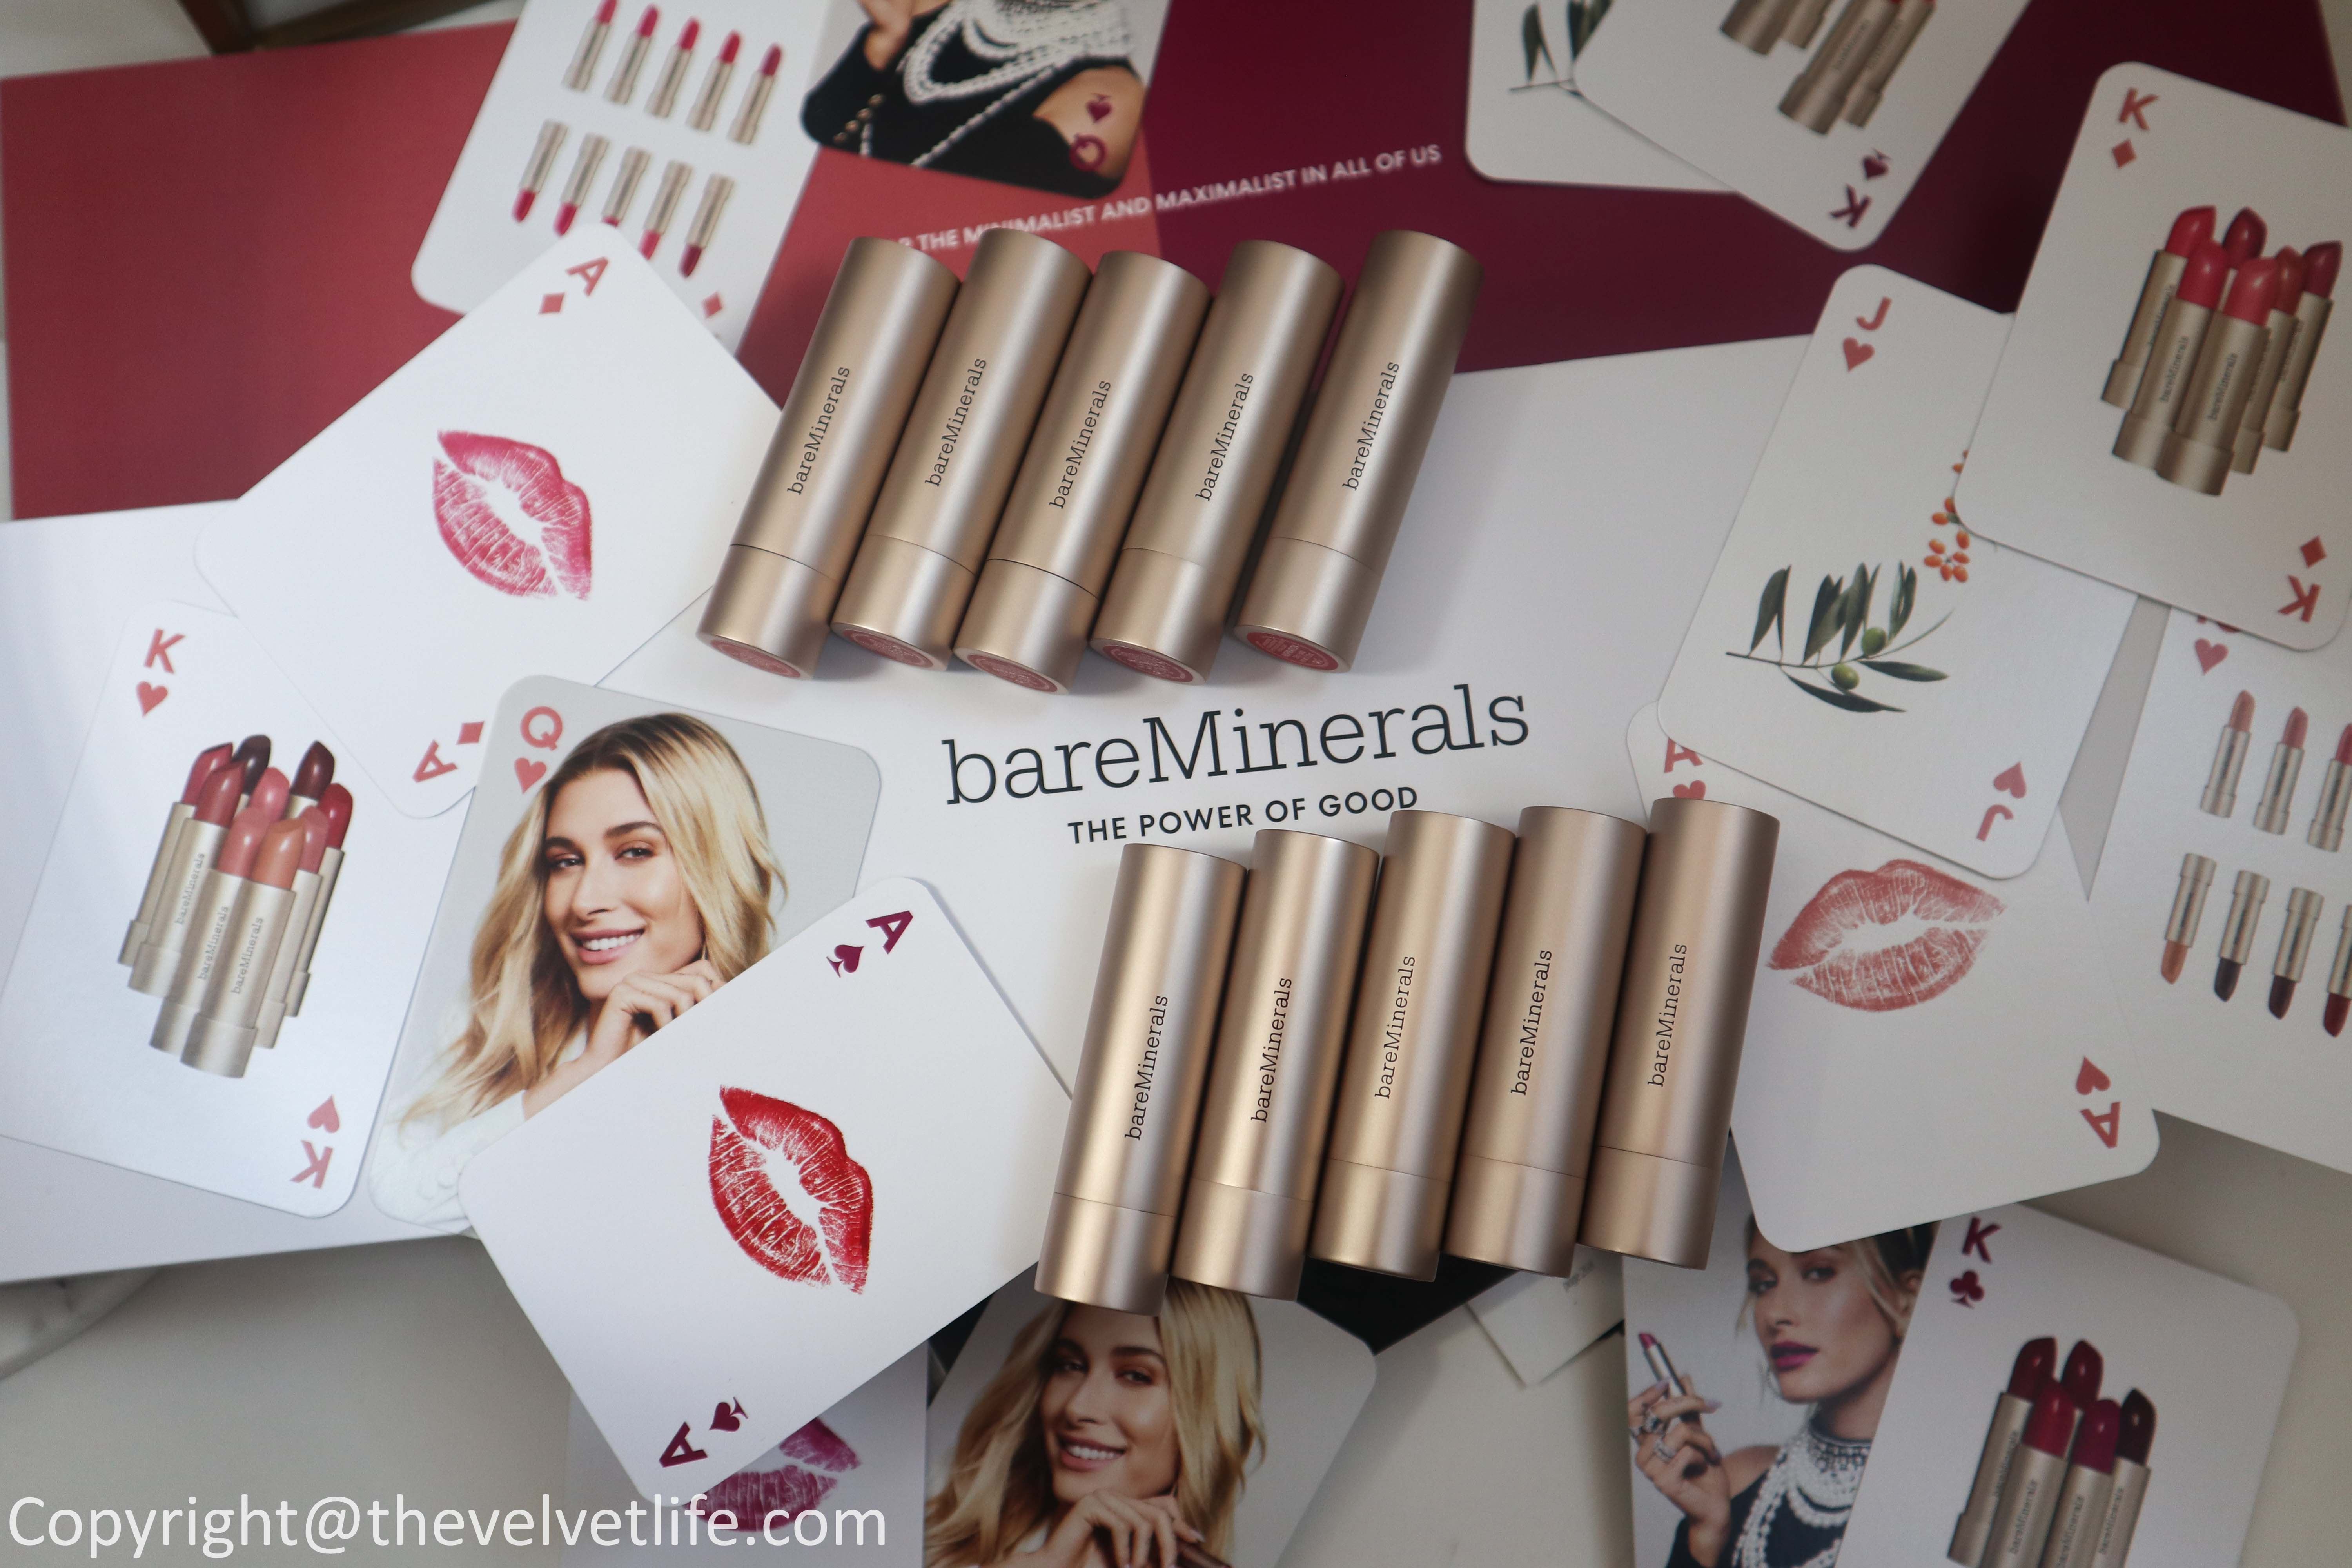 Review and swatches of the new bareMinerals Mineralist Hydra-Smoothing Lipstick